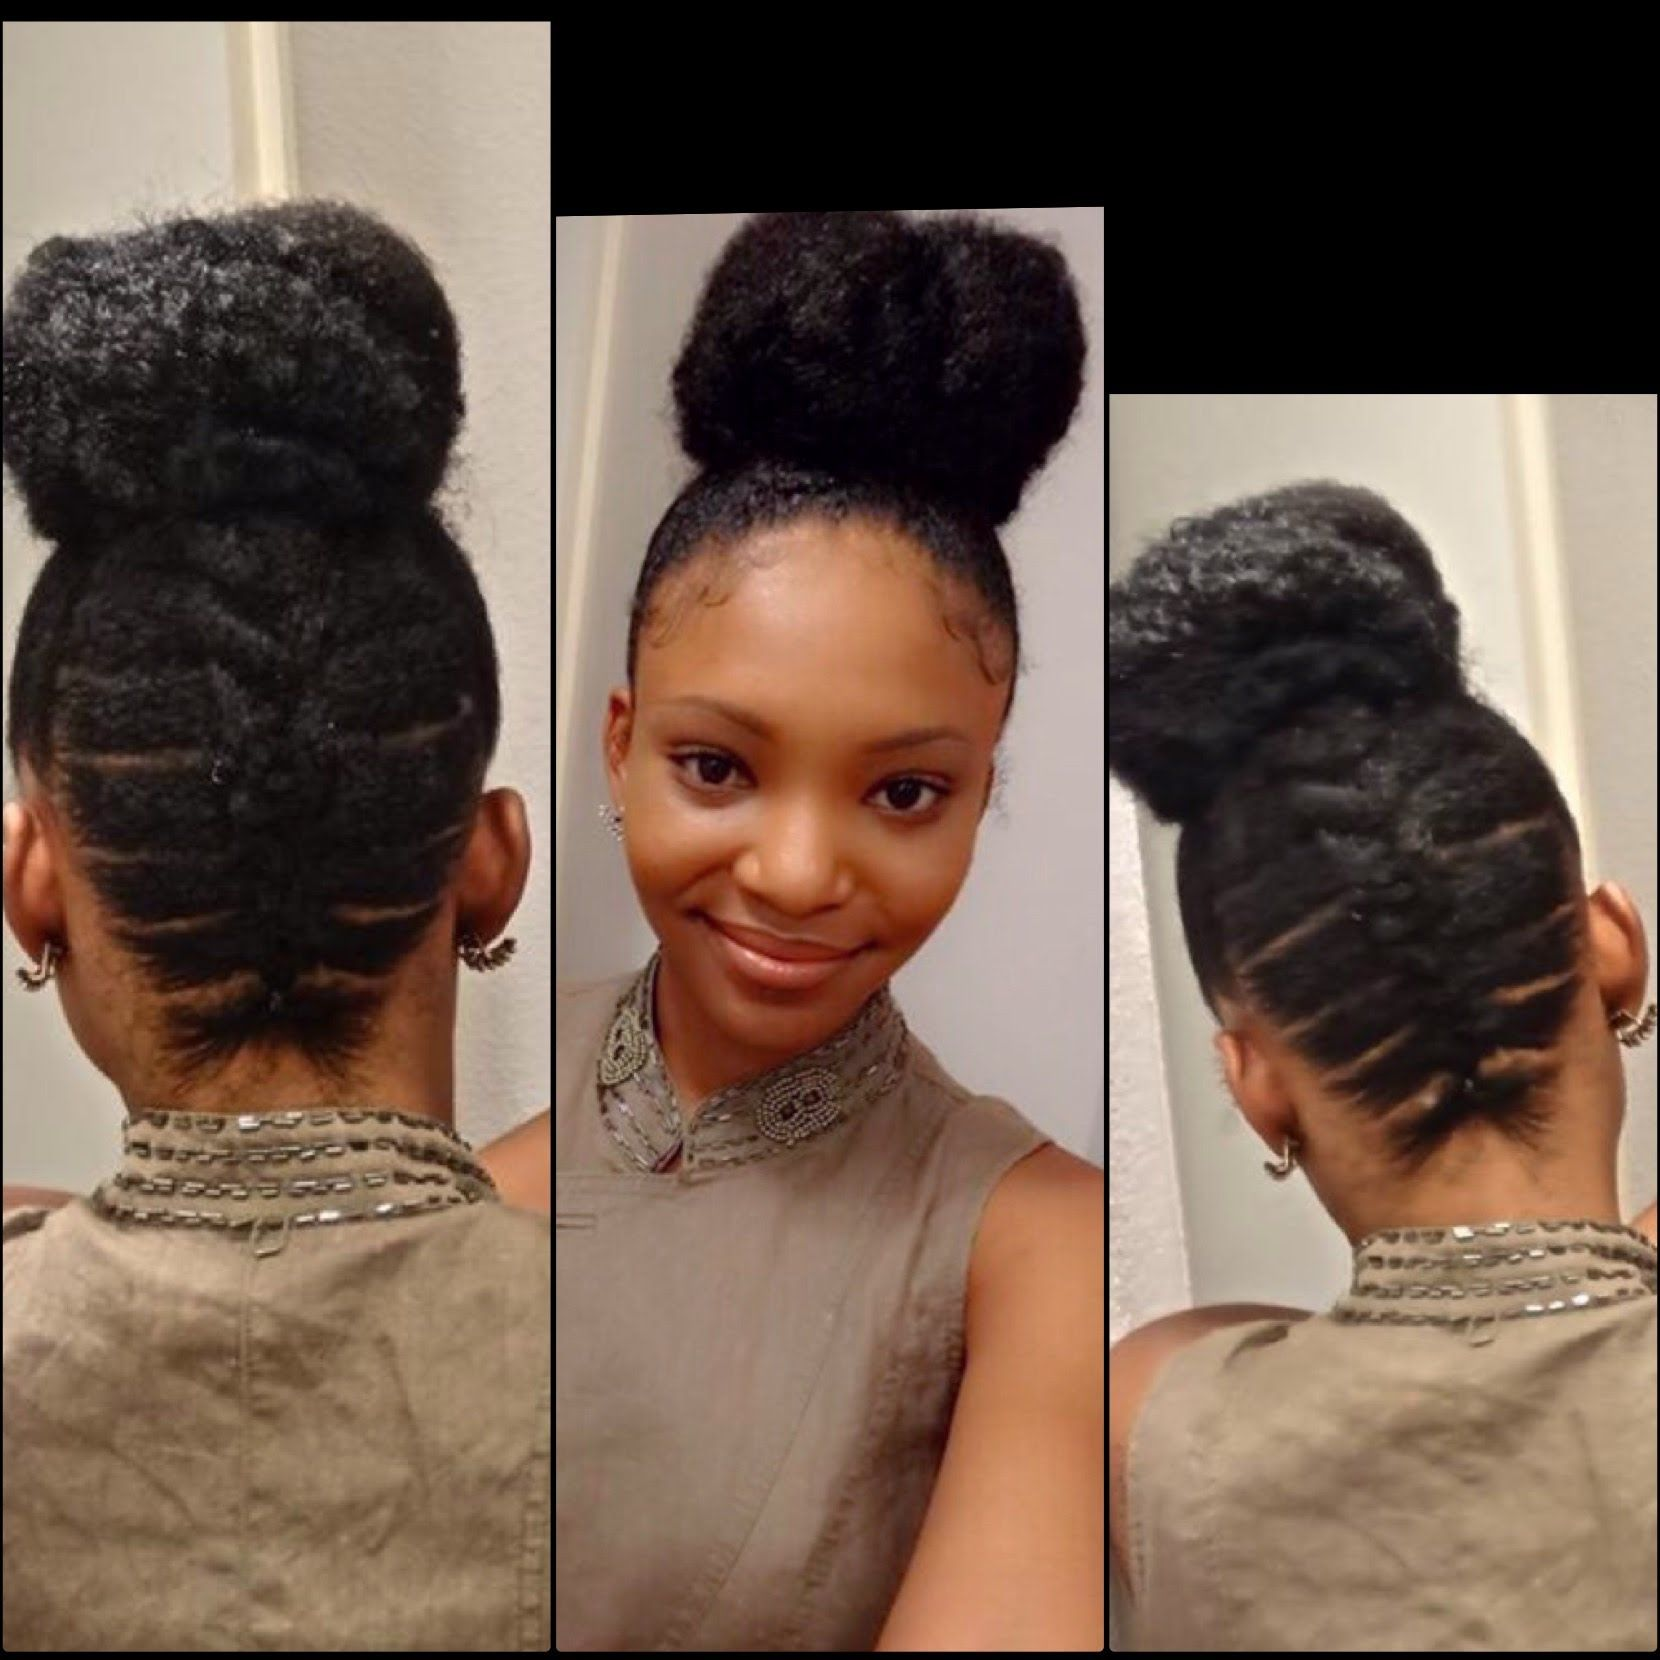 Miraculous 1000 Images About Protective Styles For Natural Hair On Pinterest Short Hairstyles For Black Women Fulllsitofus